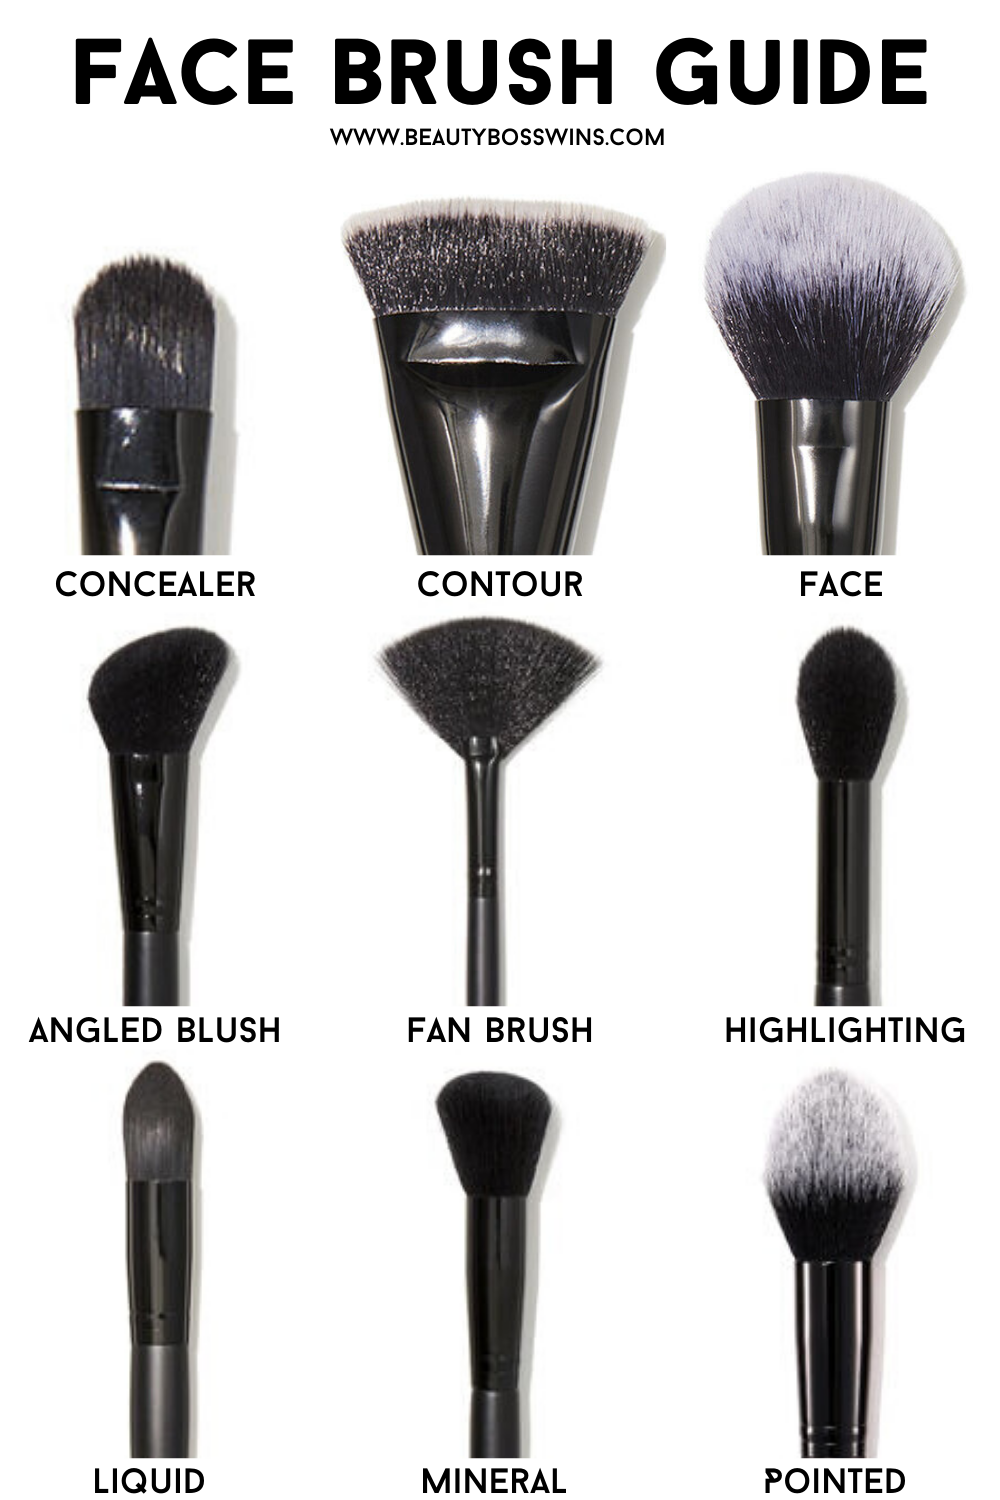 face brush guide, makeup tips for beginners, makeup brushes